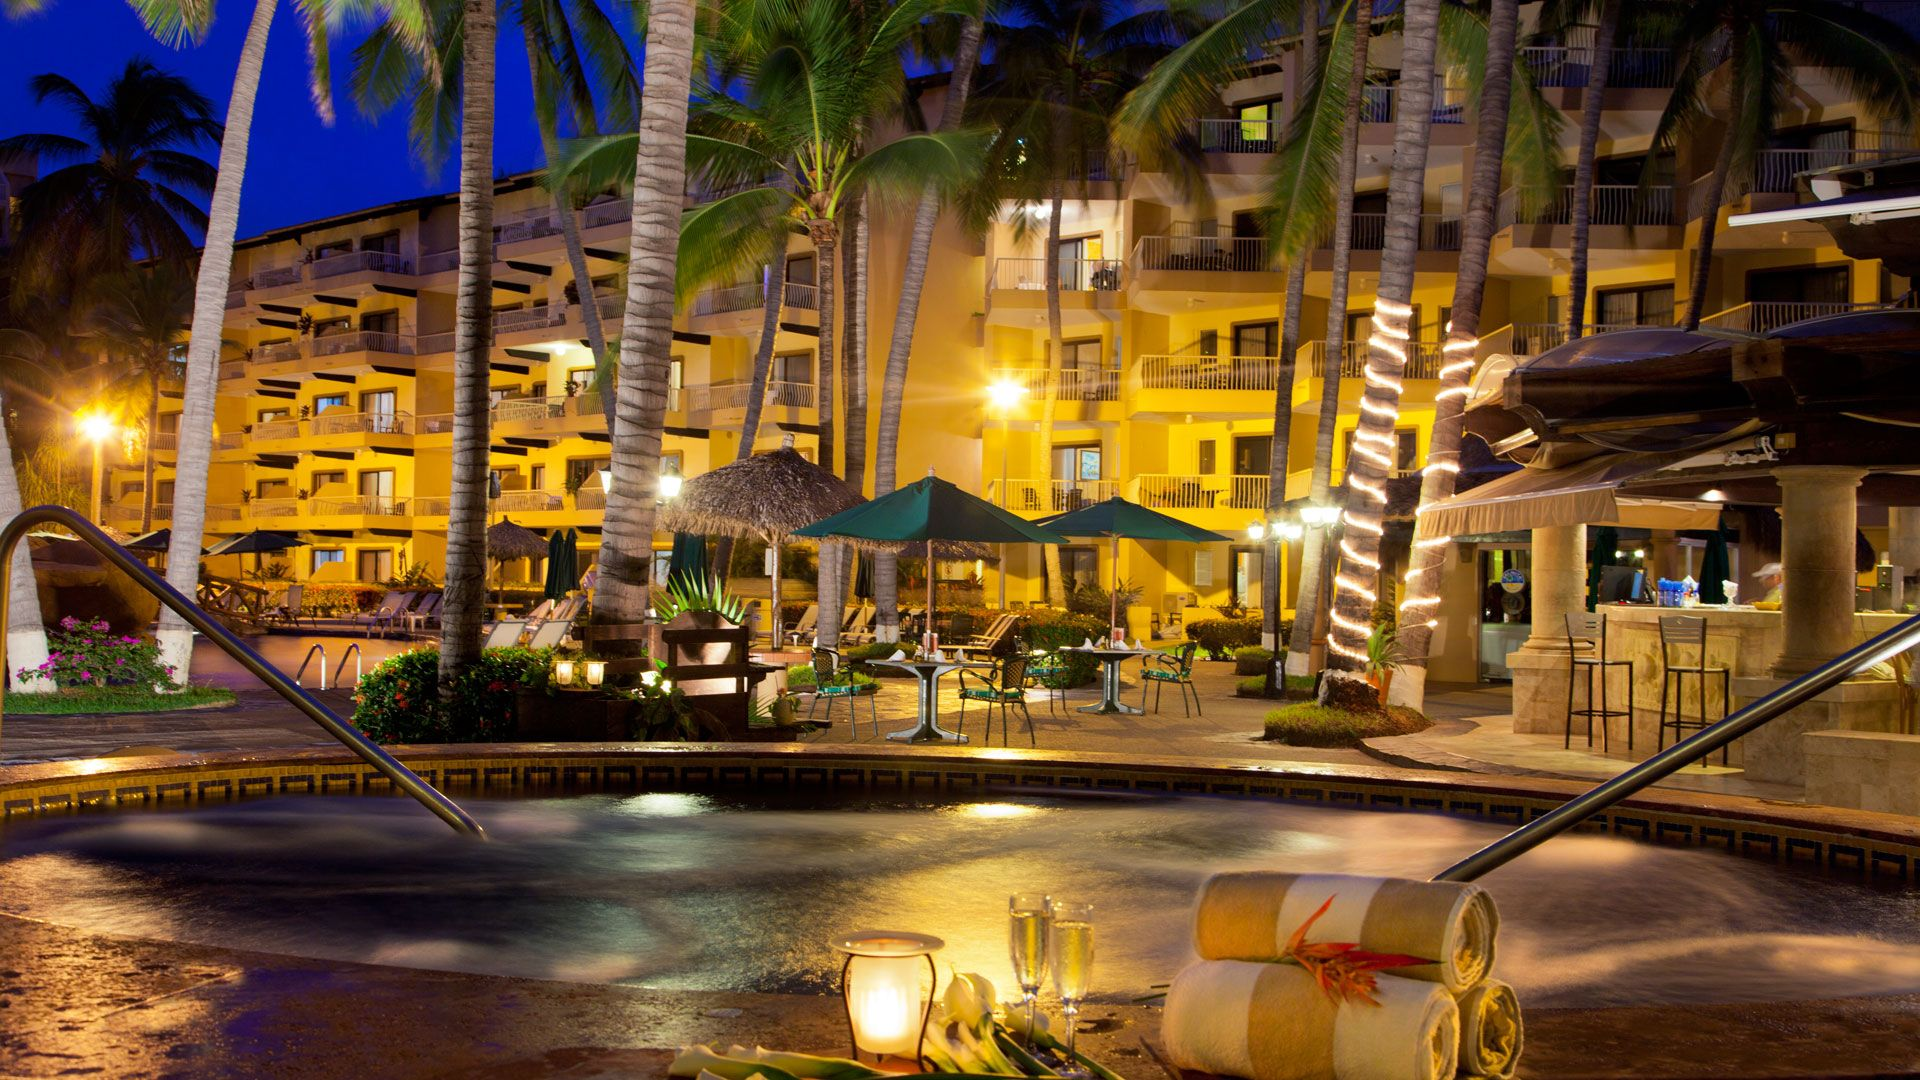 Buying a Puerto Vallarta timeshare at Villa del Palmar